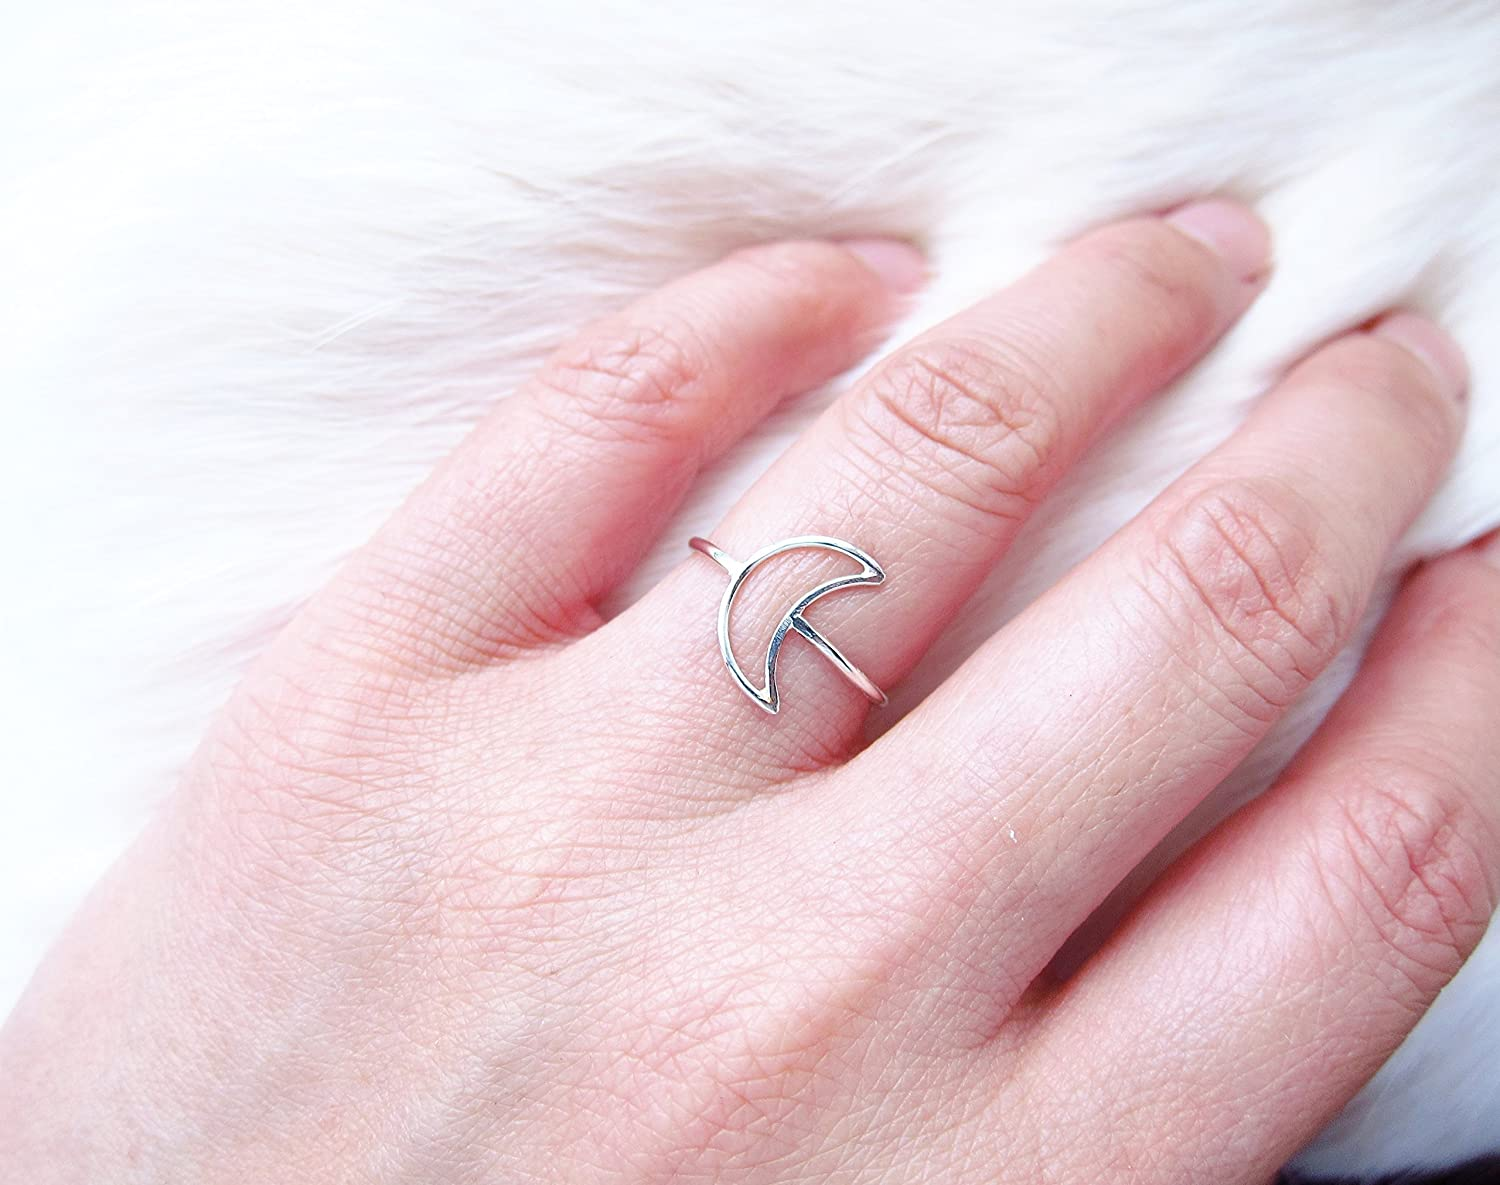 Amazon.com: Dainty Crescent Moon Ring Sterling Silver Gold: Handmade